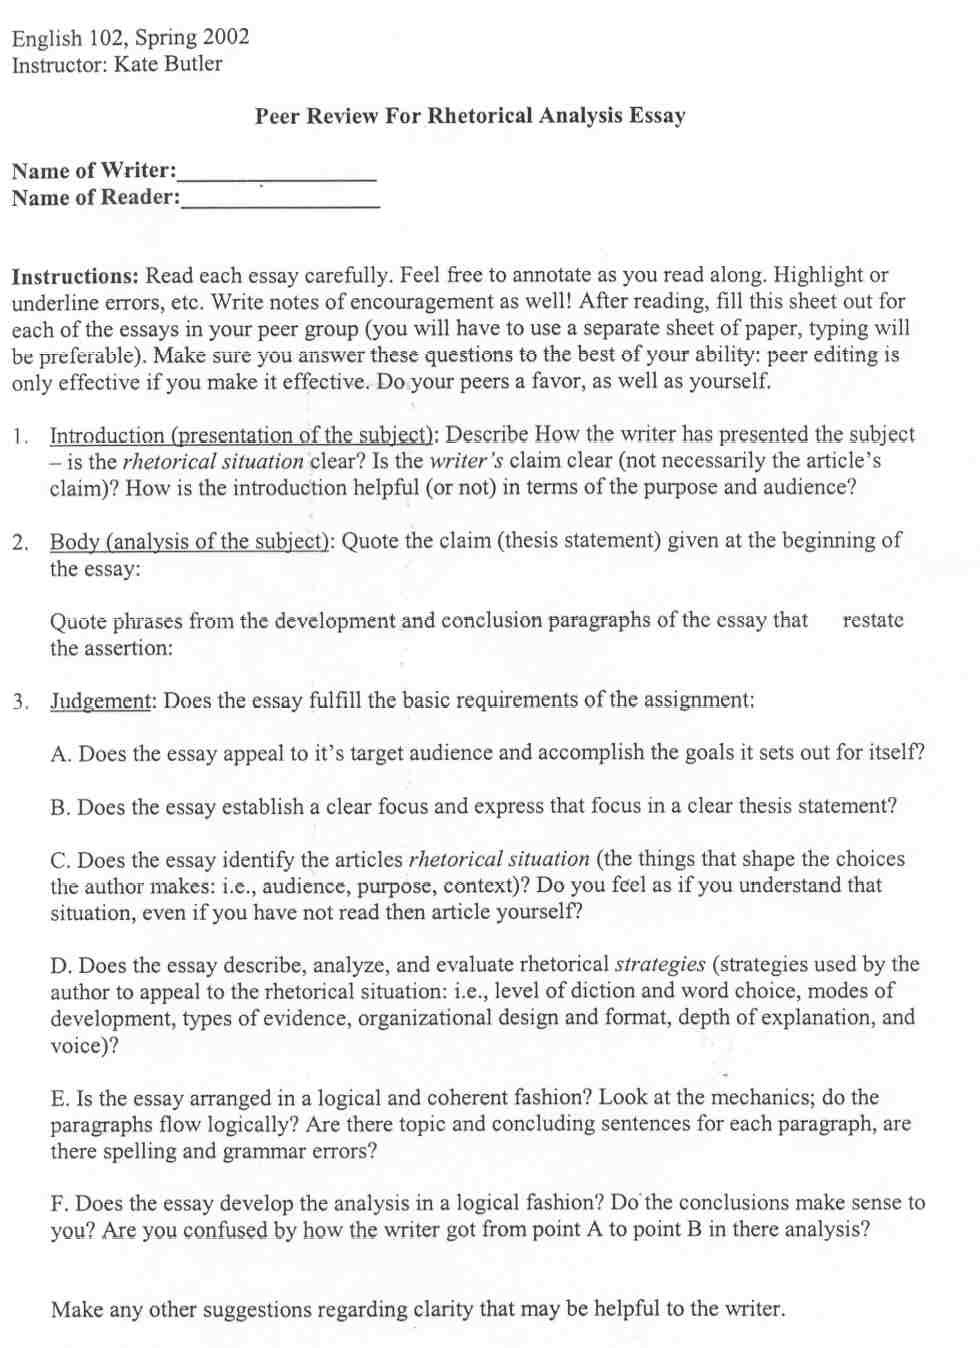 Rhetorical Analysis Outline Worksheet Good Essays for Rhetorical Analysis Outline